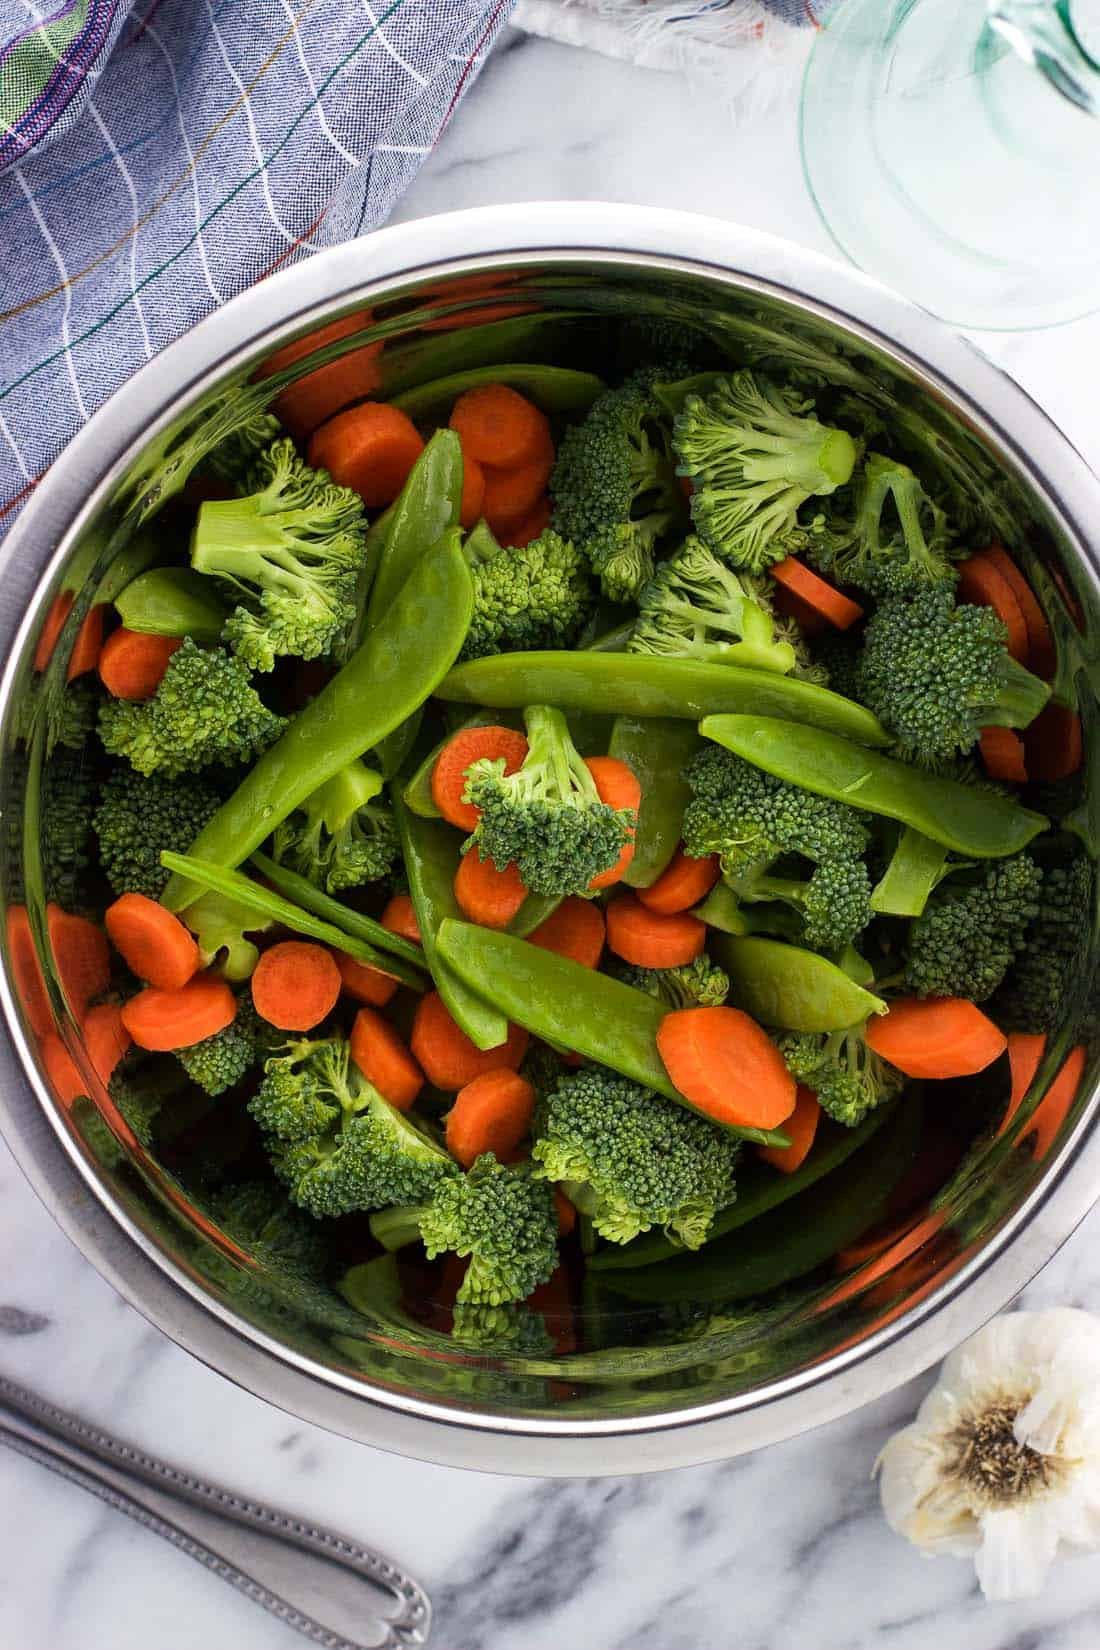 Raw broccoli florets, snow peas, and carrot slices in a mixing bowl.